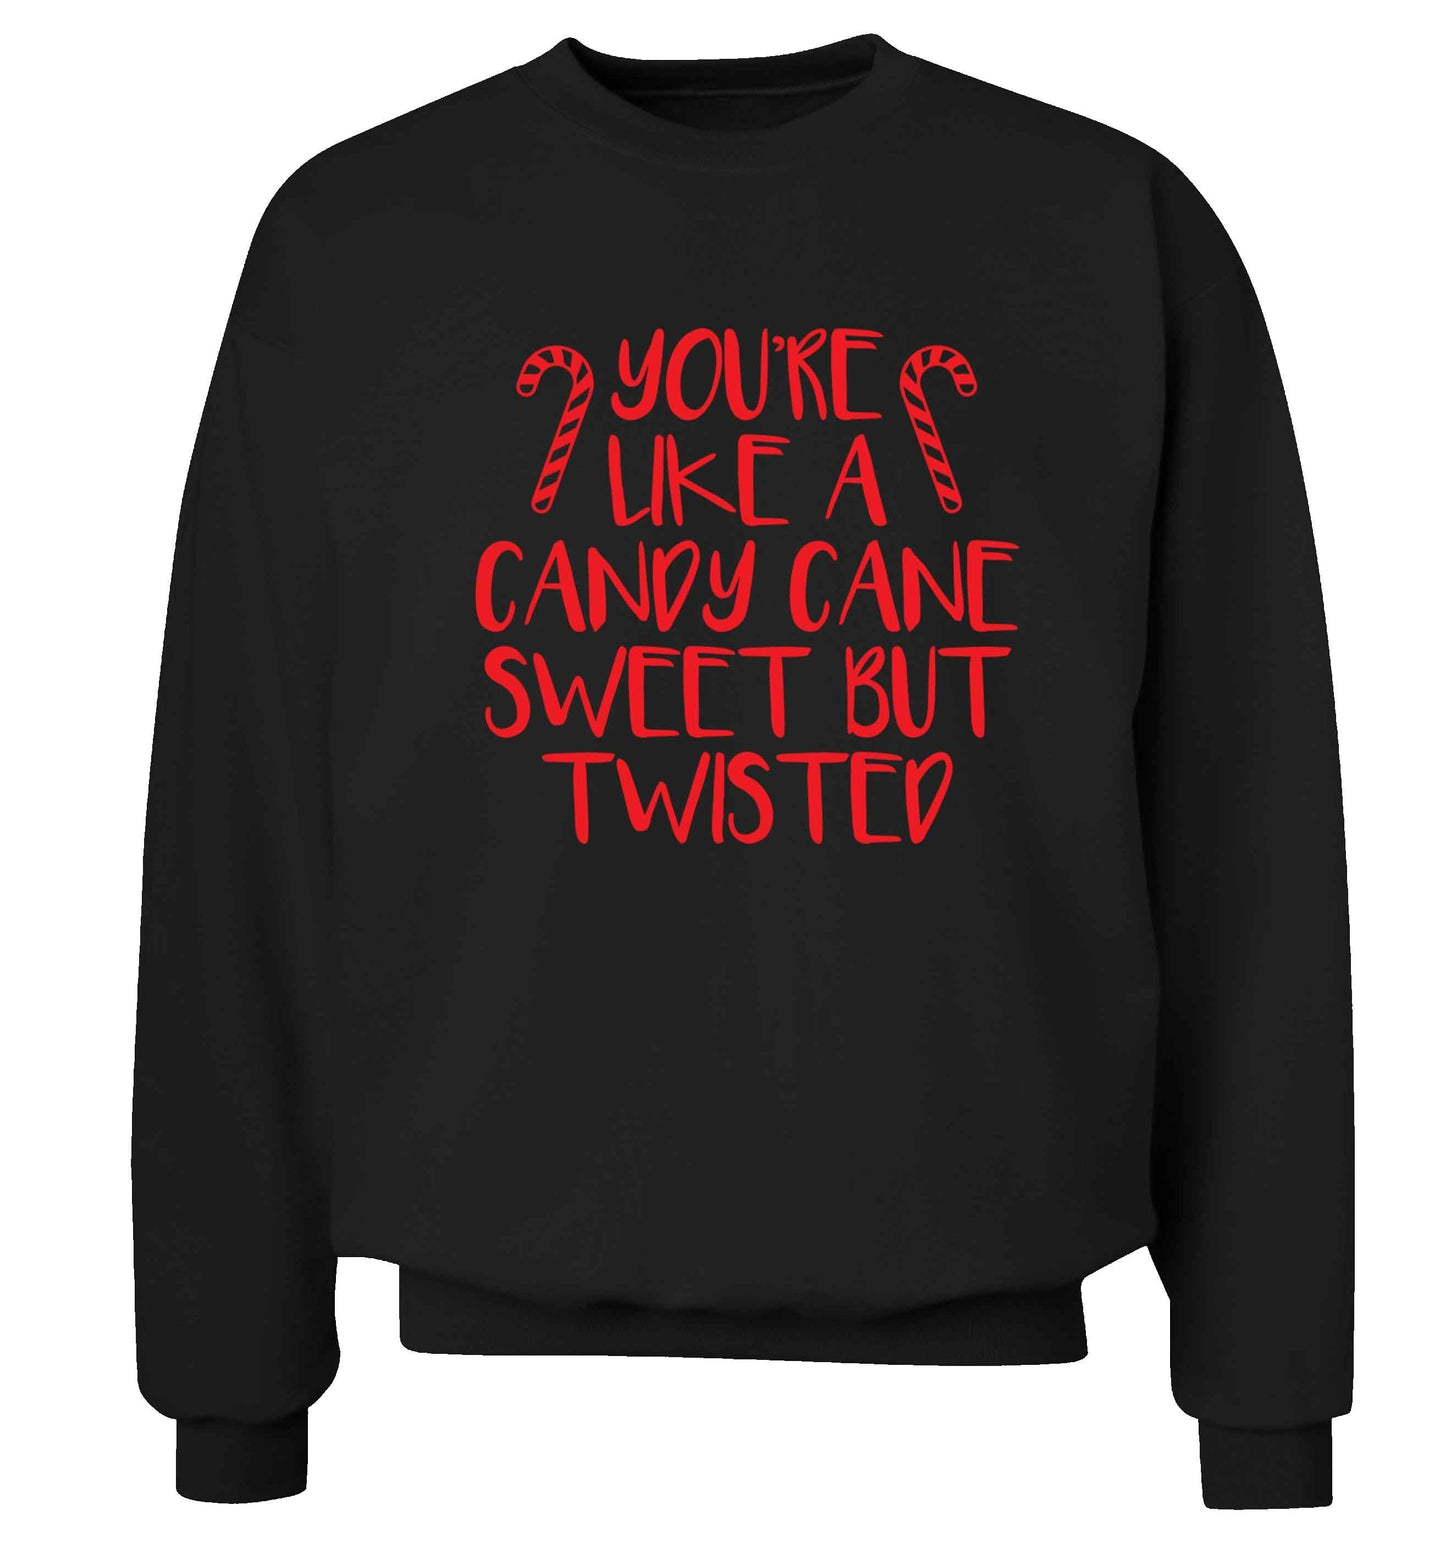 You're like a candy cane sweet but twisted Adult's unisex black Sweater 2XL